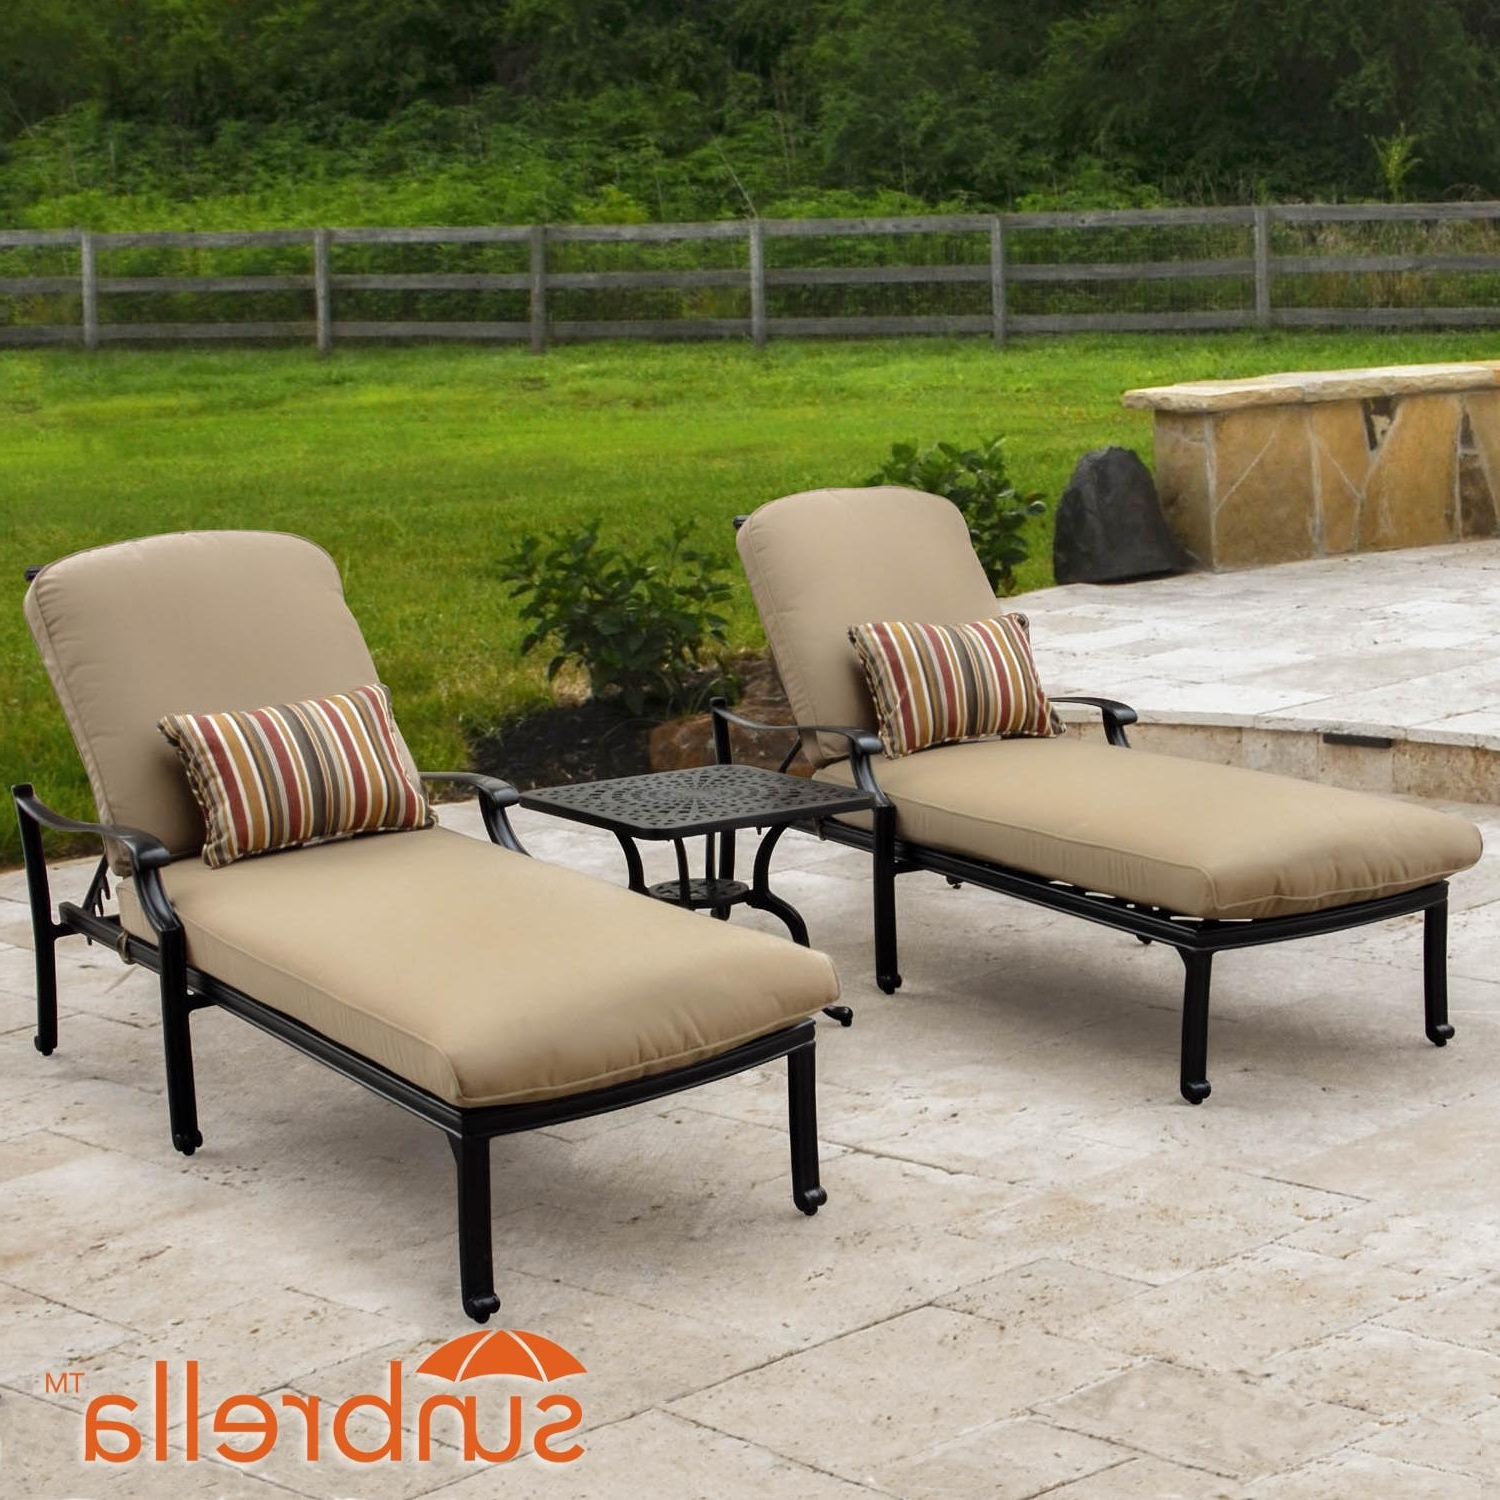 Newest Bocage 3 Piece Cast Aluminum Patio Chaise Lounge Set W/ Sunbrella In Patio Chaise Lounges (View 8 of 15)